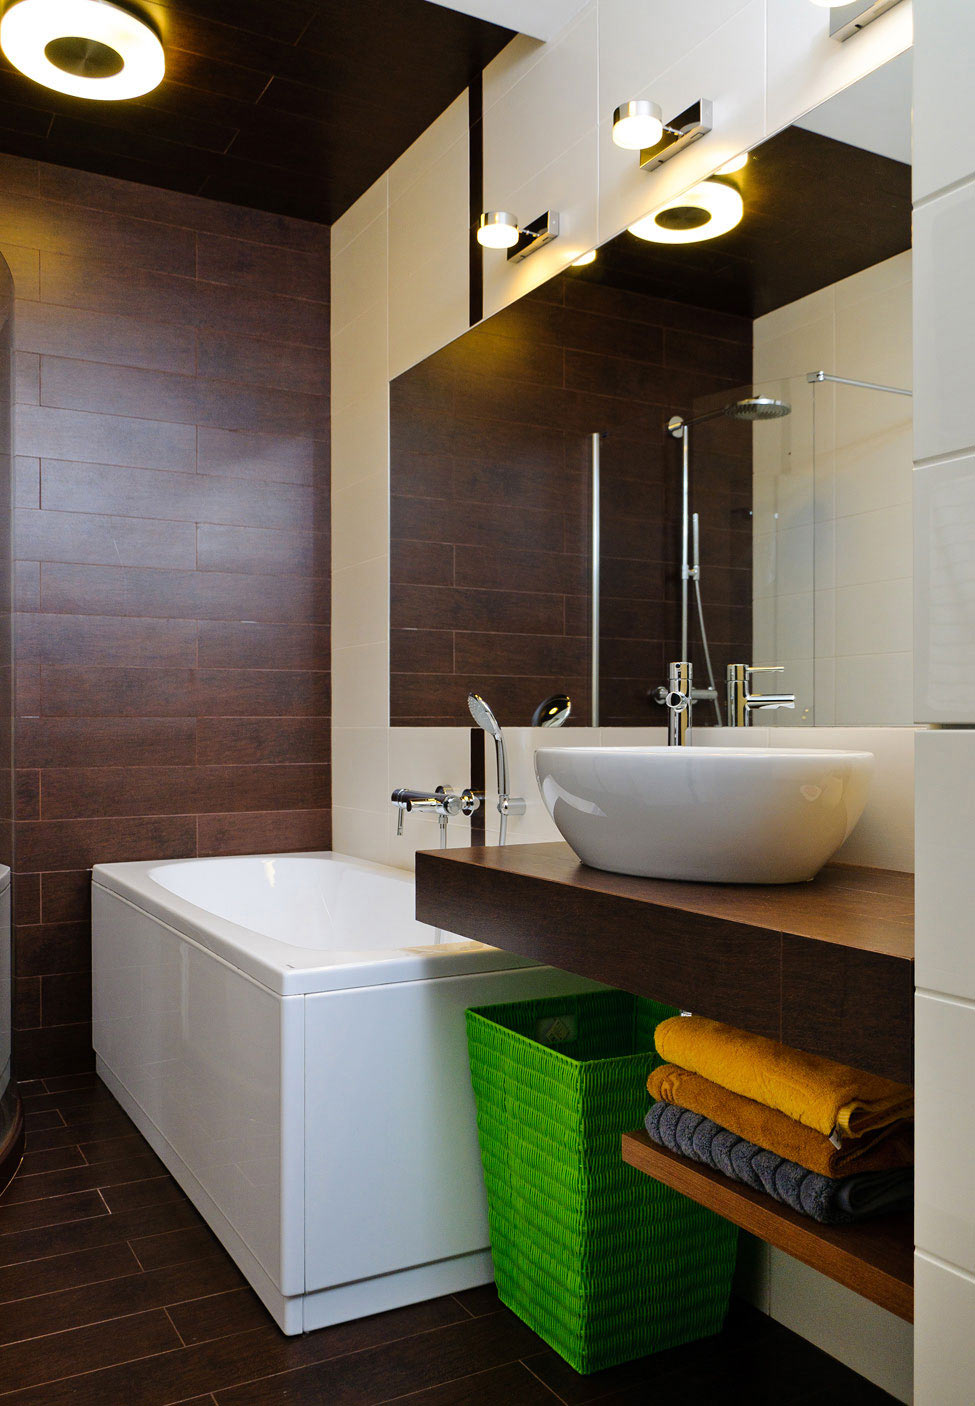 Modern Bathroom, Apartment Renovation in Odessa, Ukraine